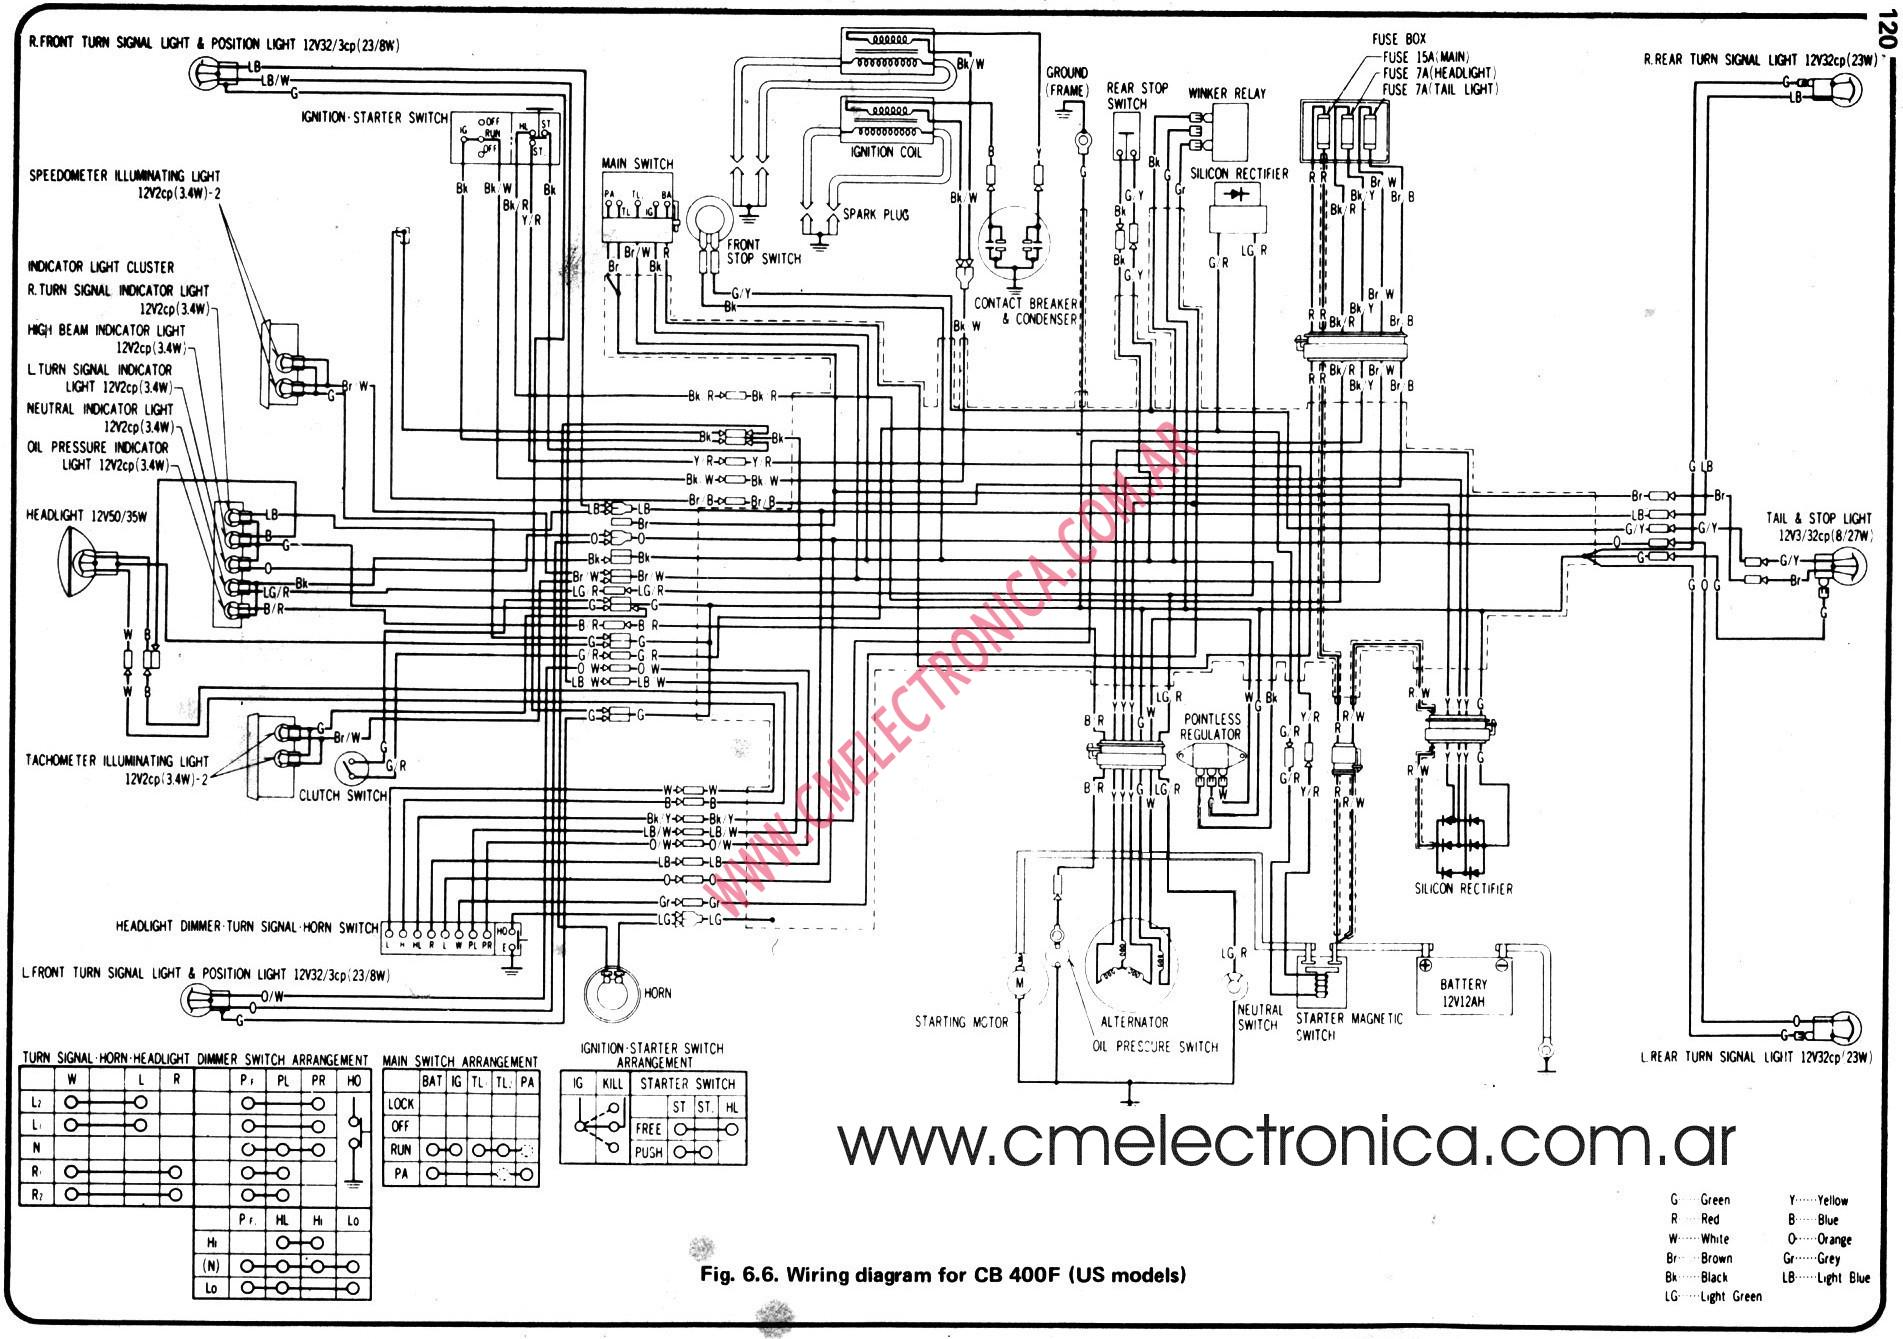 1981 Honda Goldwing Wiring Diagram As Well besides 1981 Honda Cb750c Wiring Diagram furthermore Honda Xl 185 Wiring Diagrams as well Suzuki Gs750 Wiring Harness furthermore 1978 Honda Cb750 Wiring Diagram. on 1980 honda cb750f wiring diagram